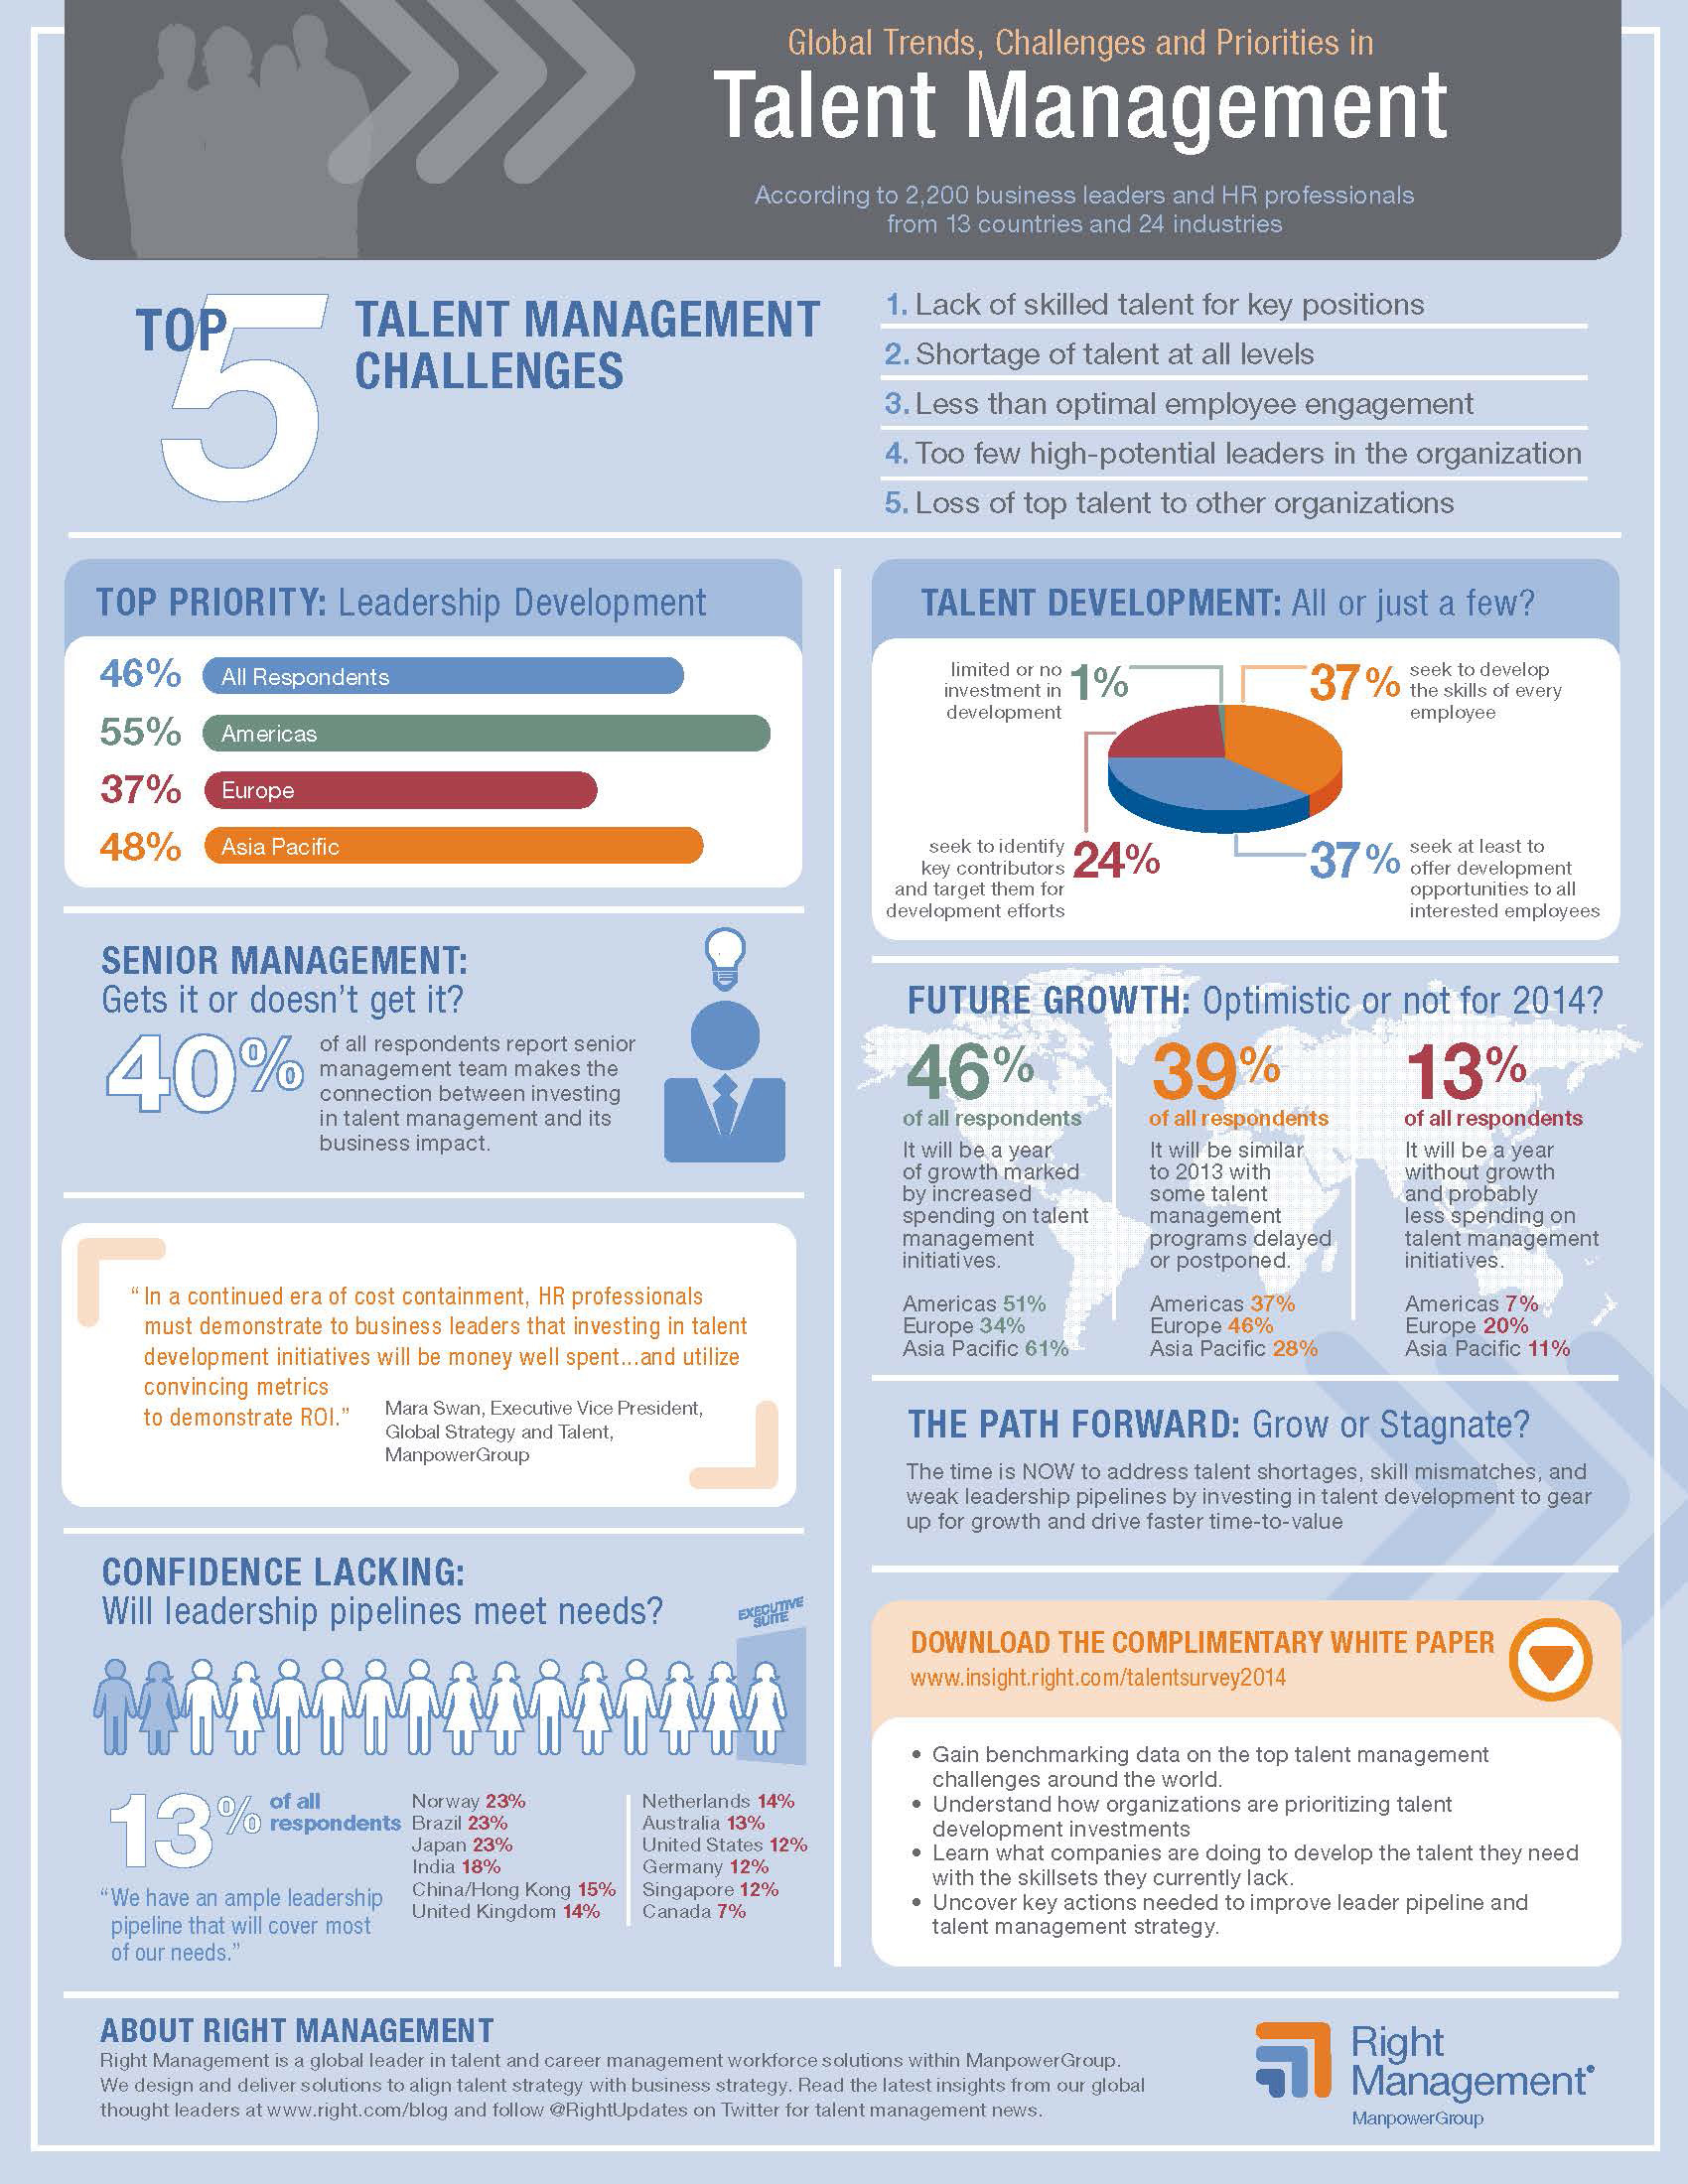 Right Management's latest research reports global trends, challenges and priorities in talent management for 2014.